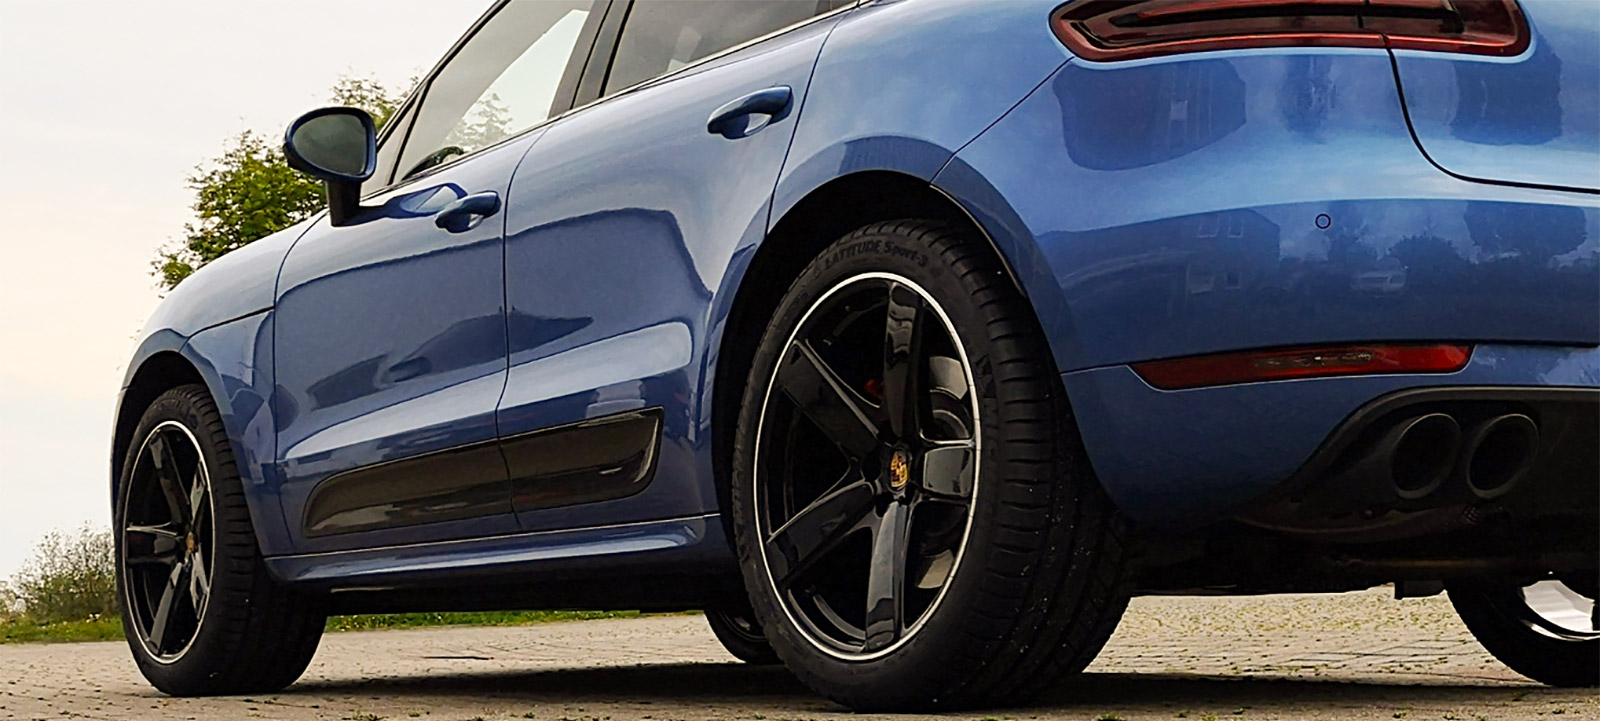 Macan - compact, with DNA sports car